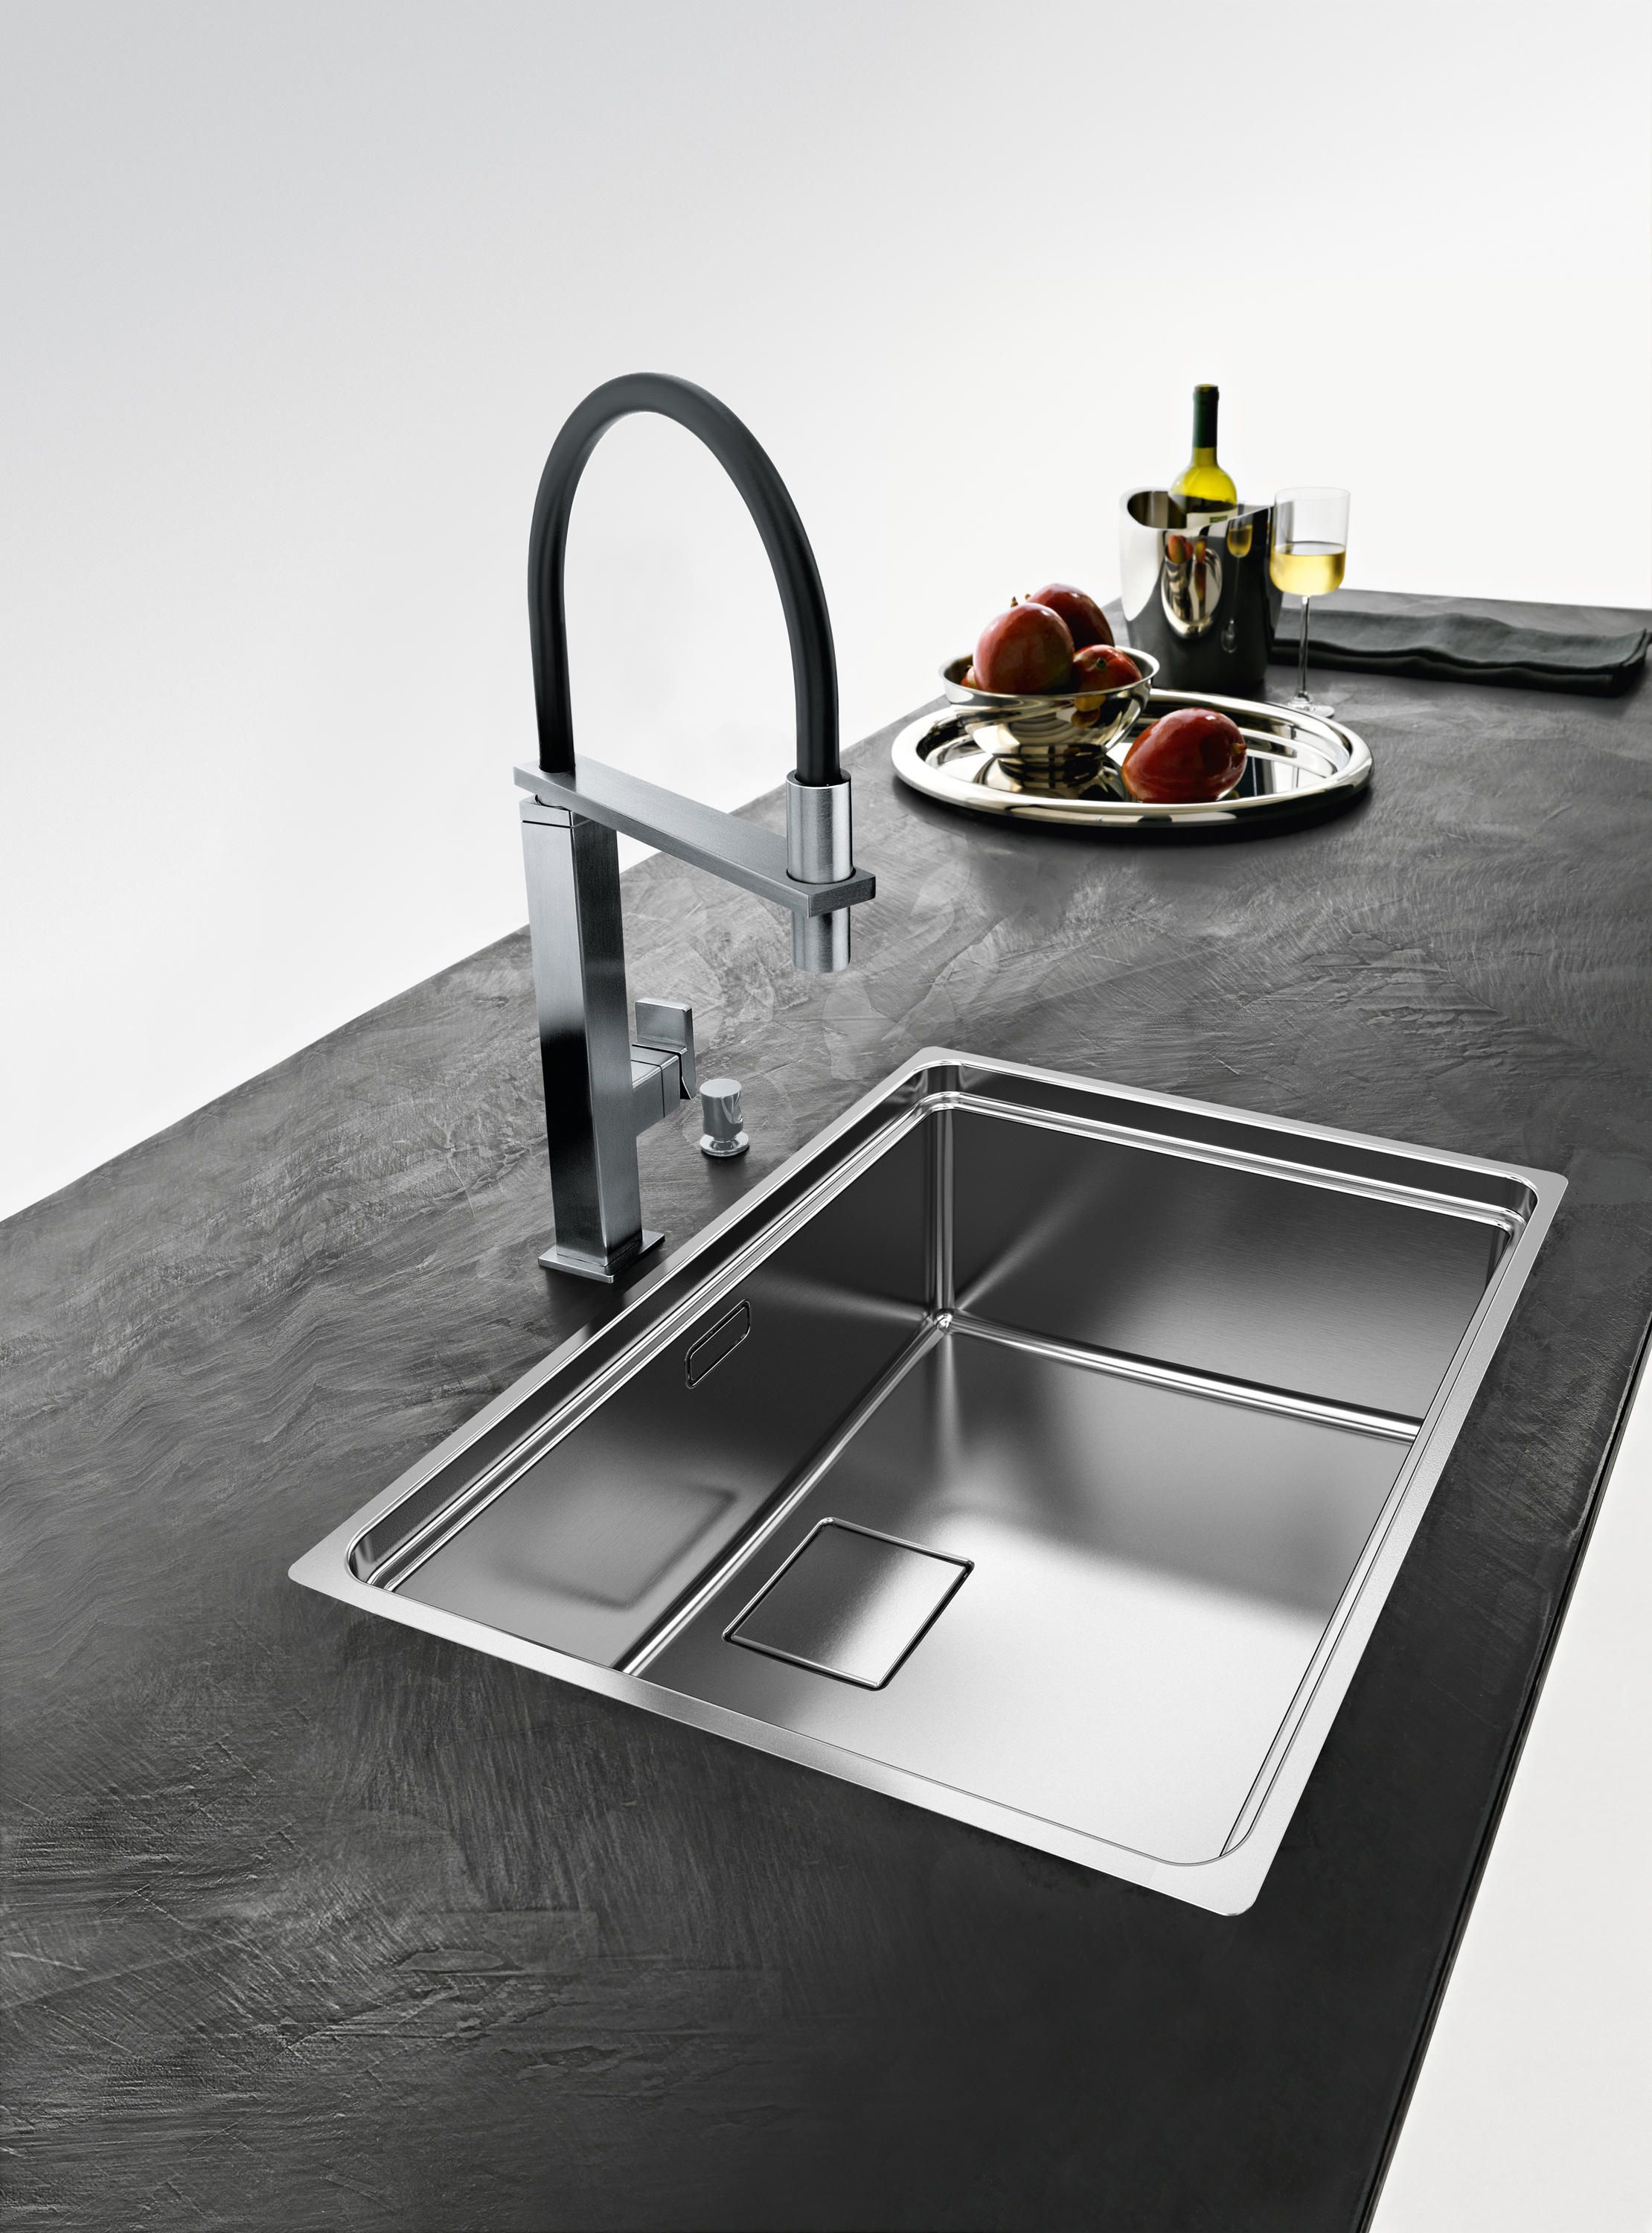 Centinox Sink Cmx 210 50 Stainless Steel Designer Kitchen Sinks From Franke Kitchen Syste Modern Kitchen Interiors Interior Design Kitchen Best Kitchen Sinks